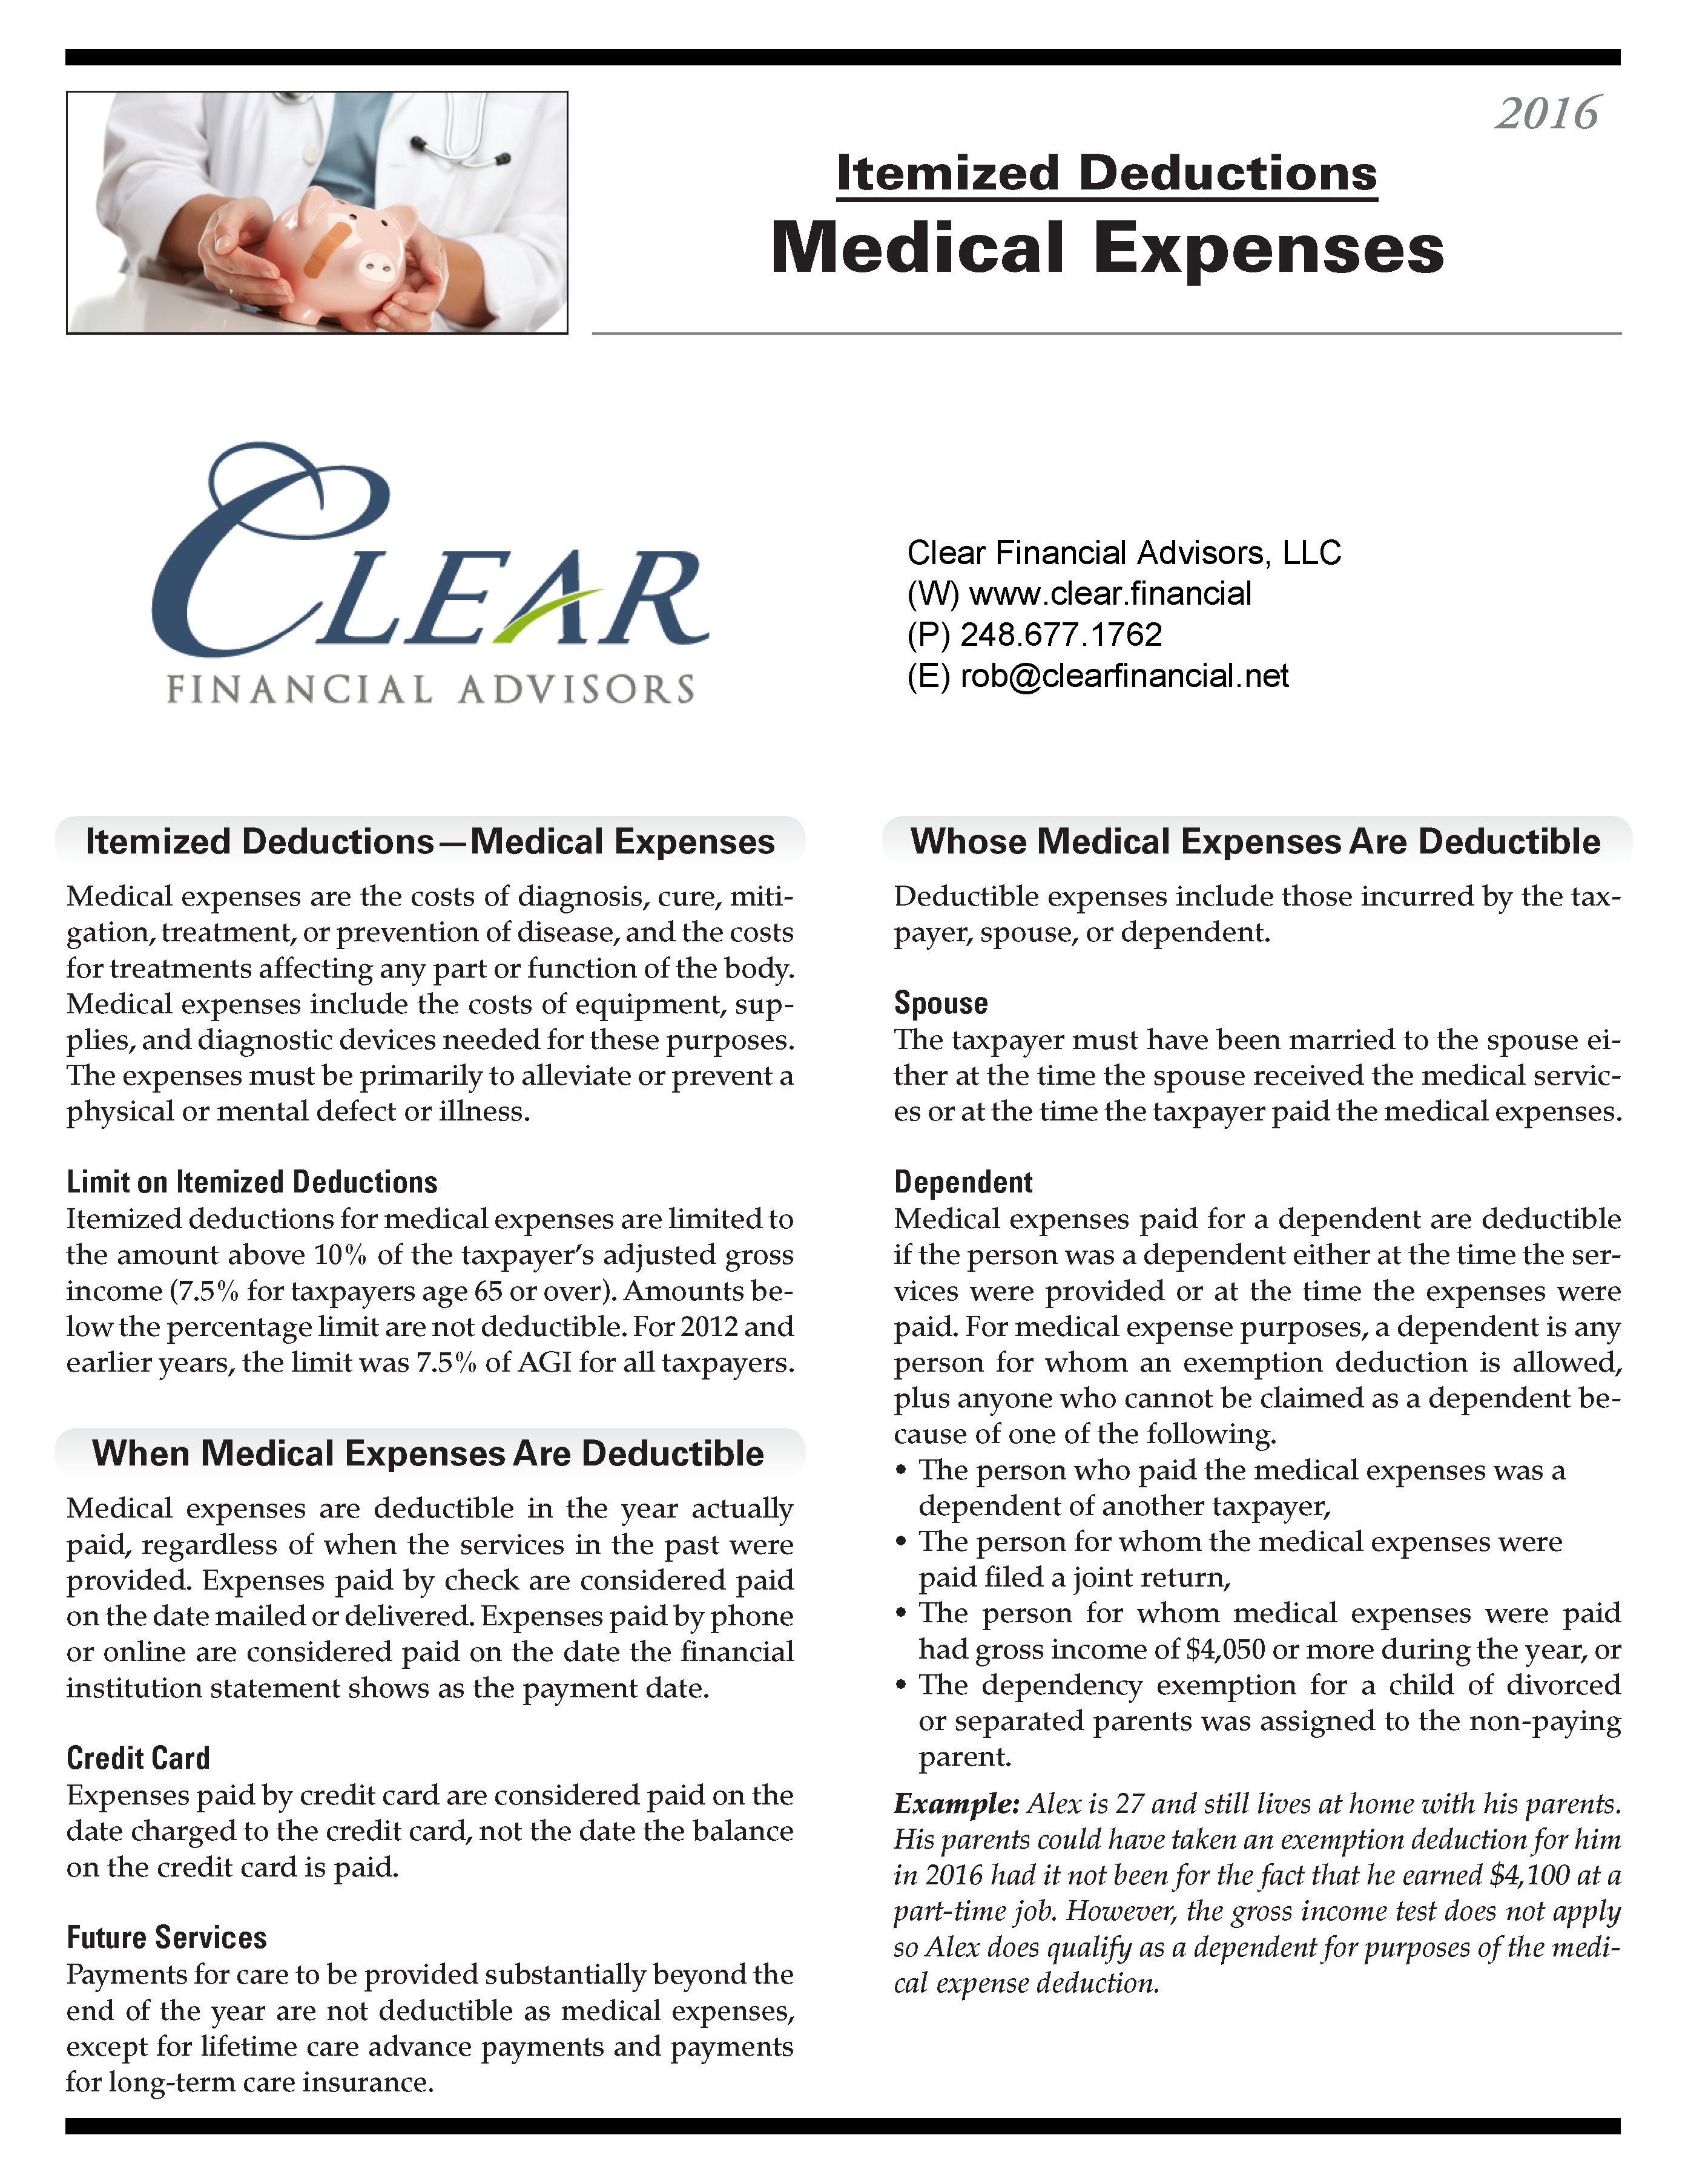 Itemized_Deductions_-_Medical_Expenses_2016_Page_1